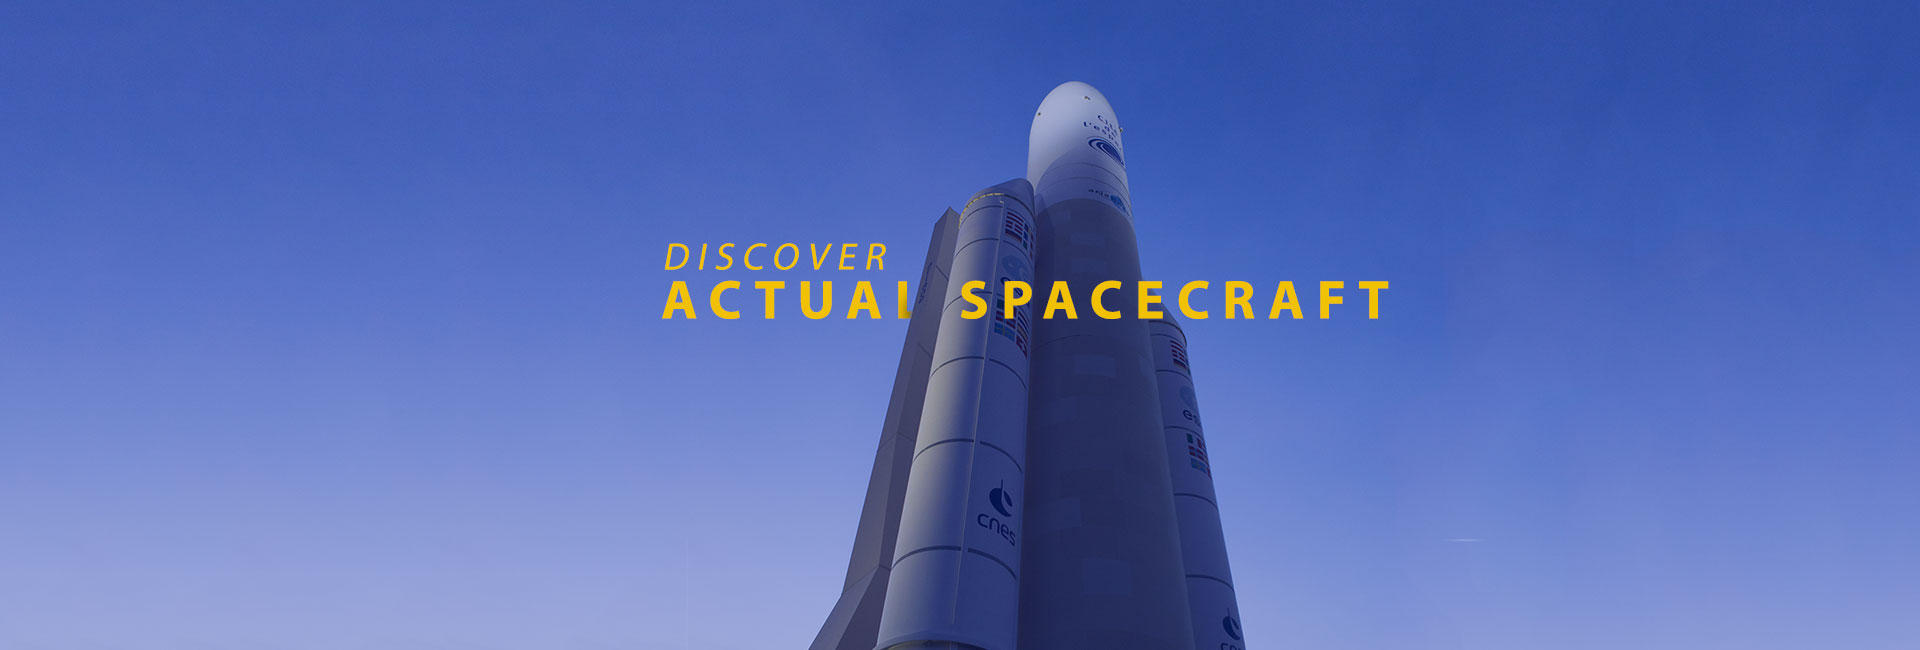 Discover actual Spacecraft